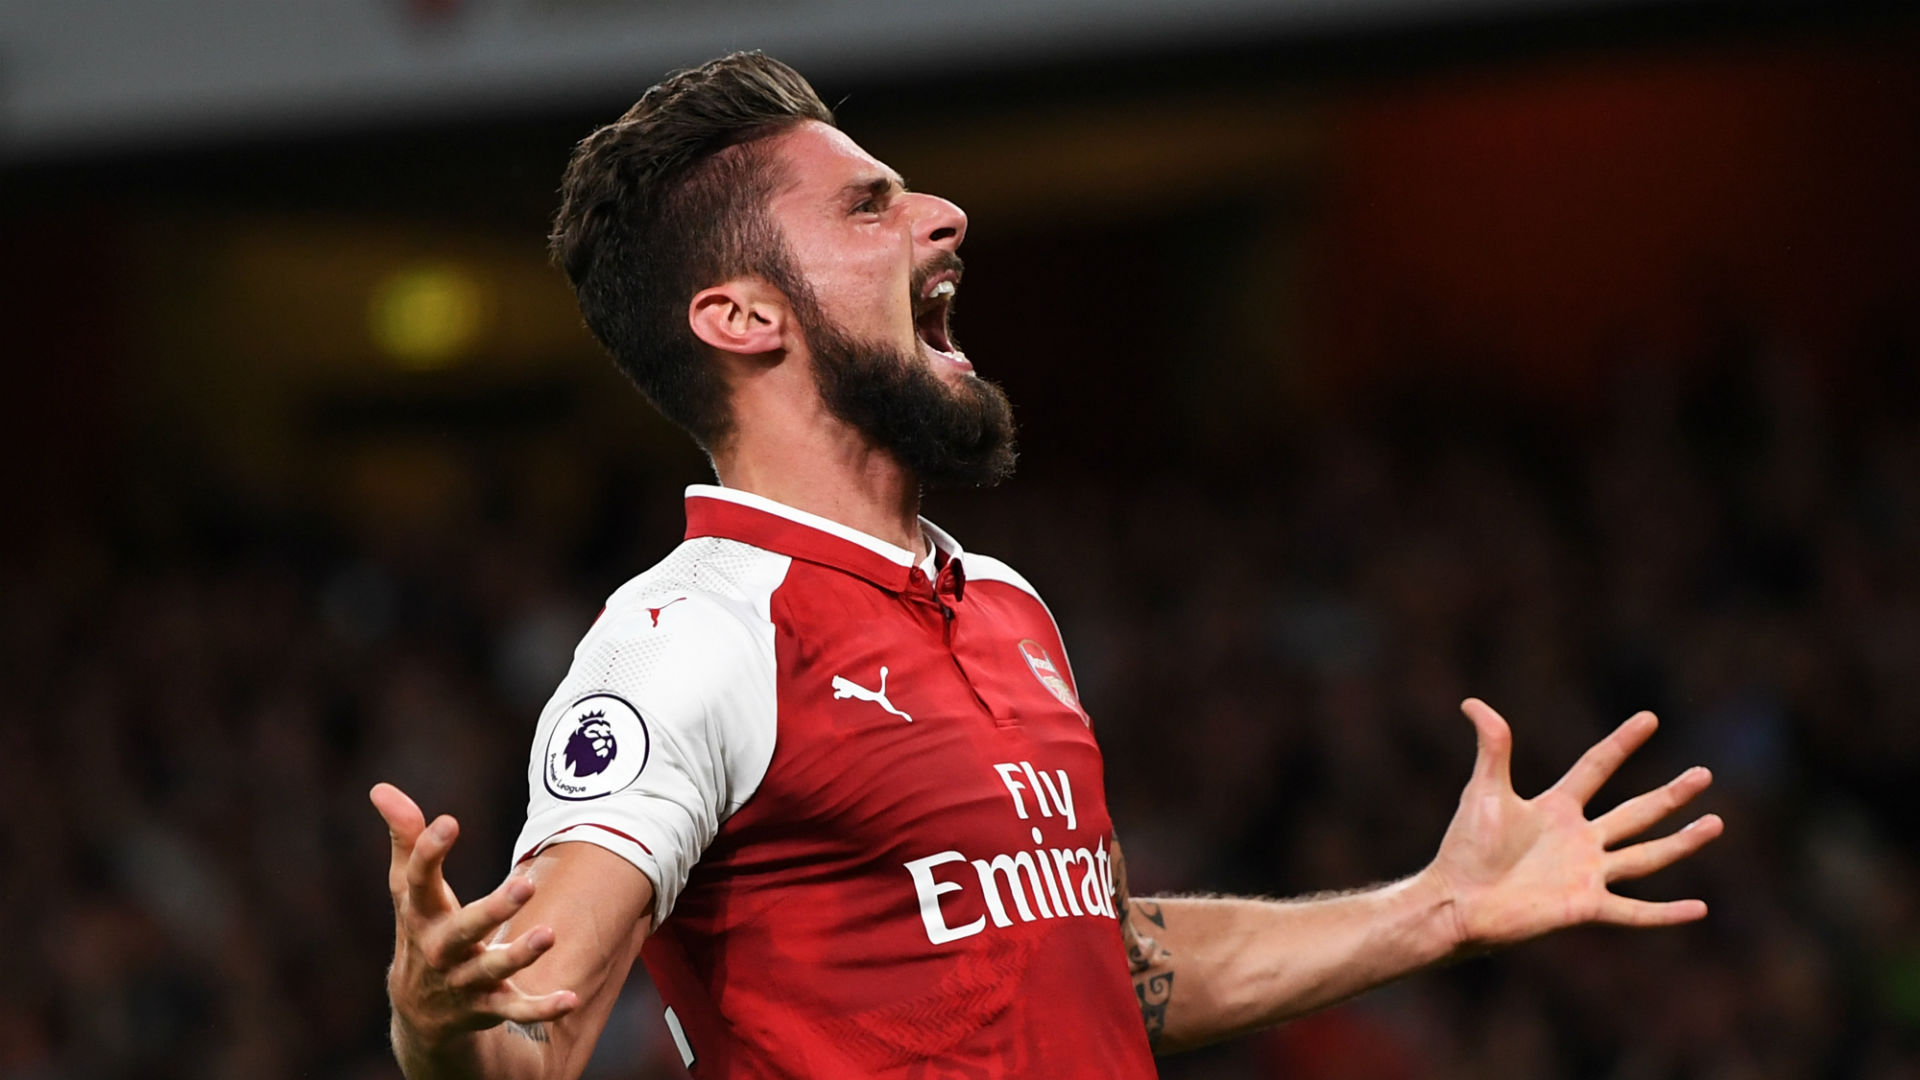 He loves Arsenal and is loved - Wenger hails match-winner Giroud